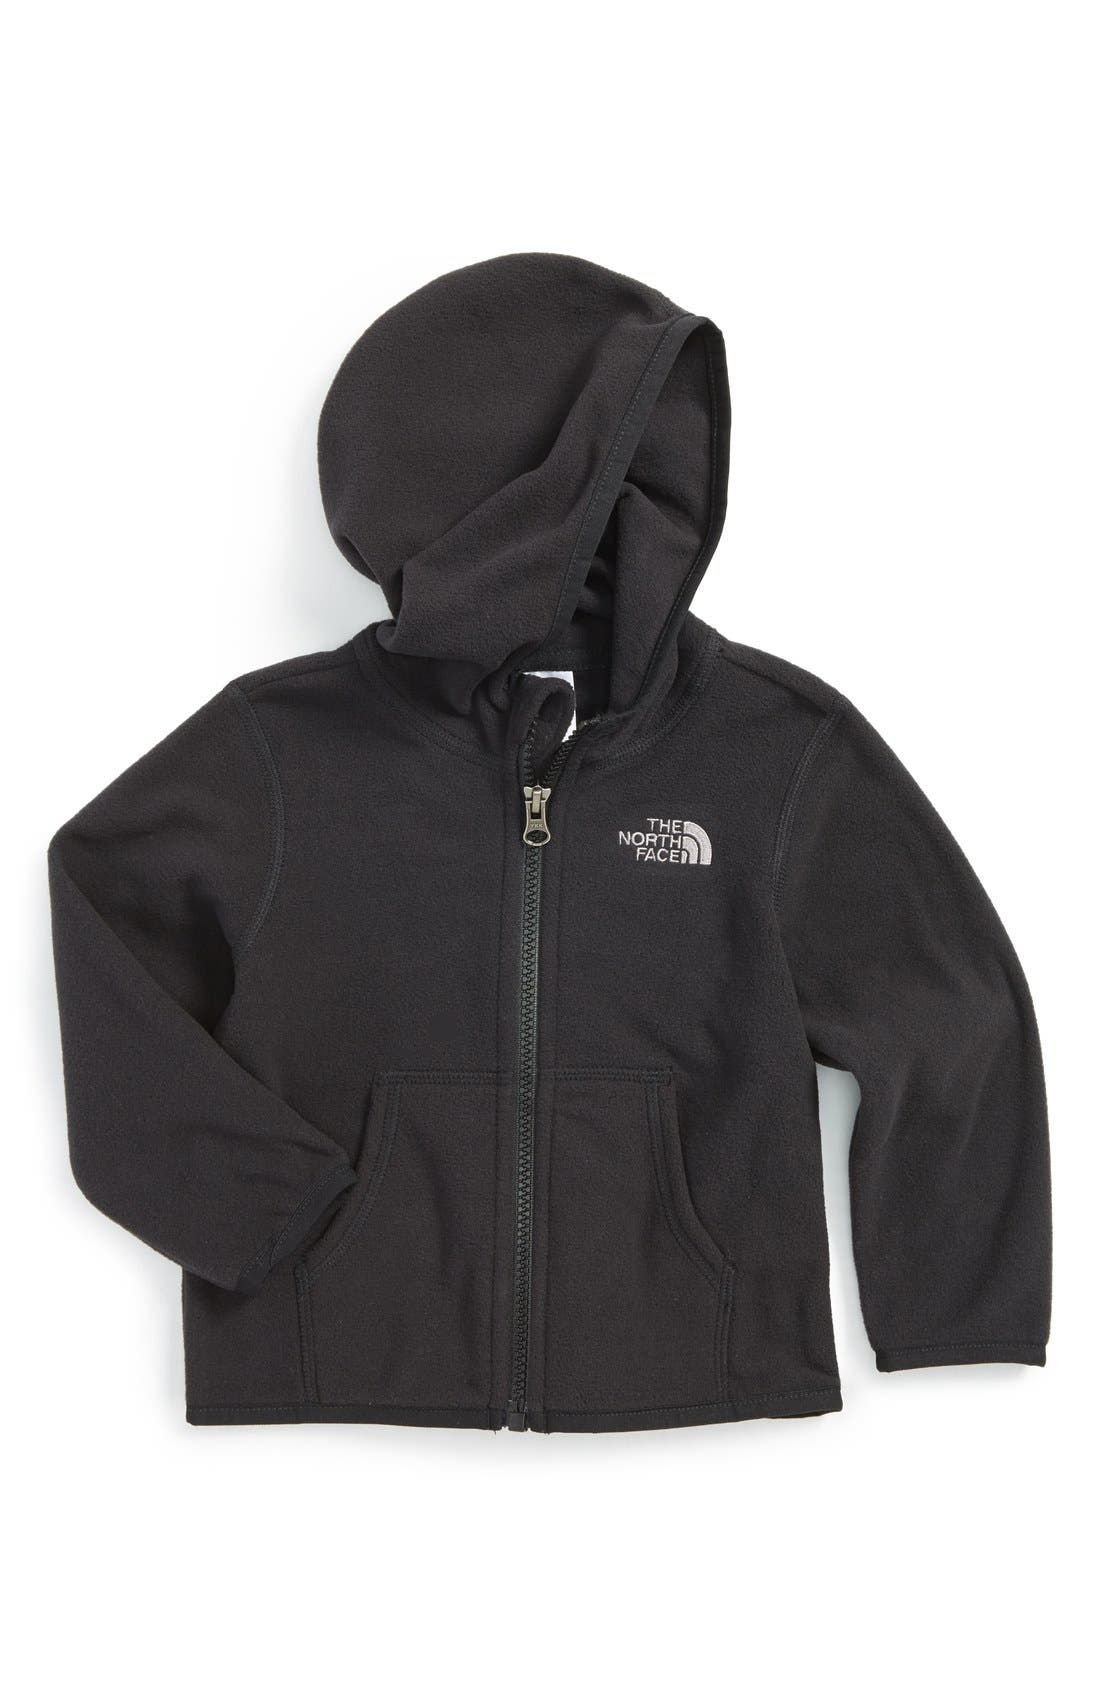 The North Face 'Glacier' Fleece Jacket ...